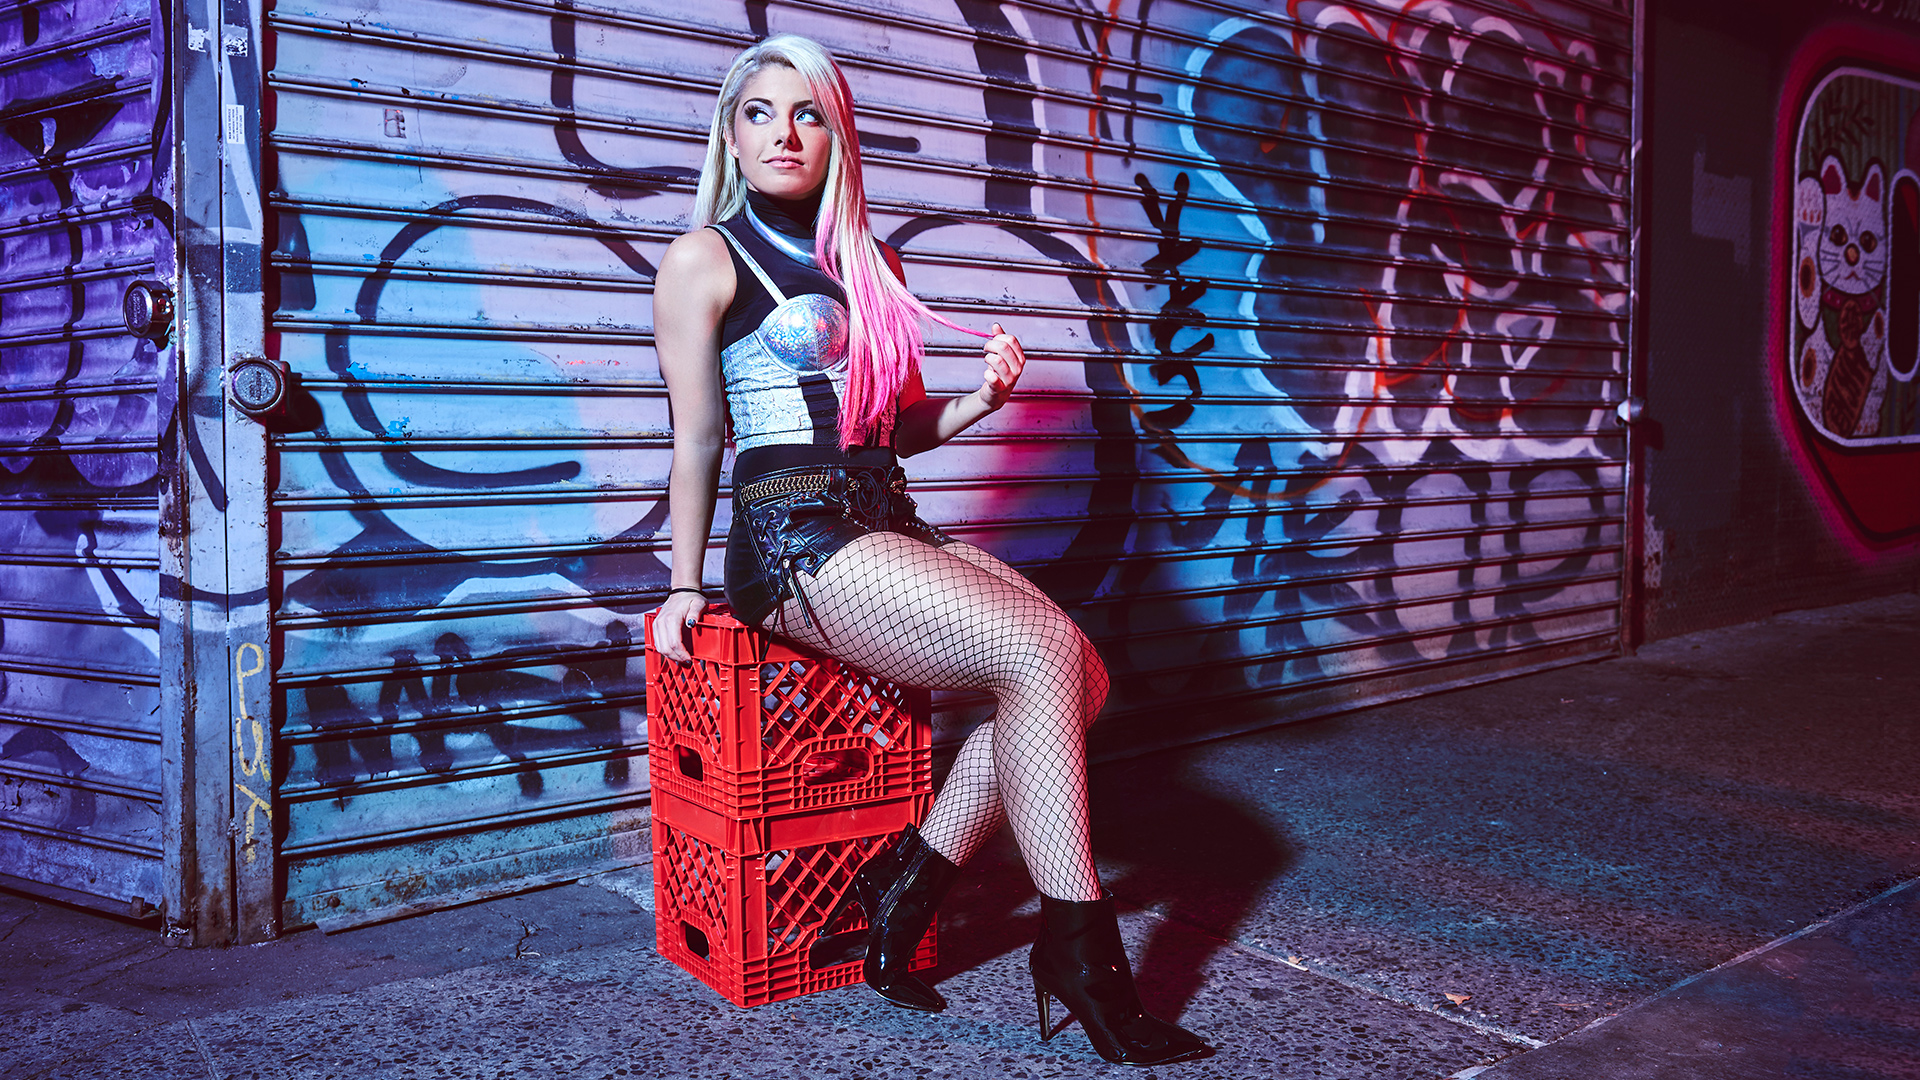 Alexa Bliss Photoshoot Hot